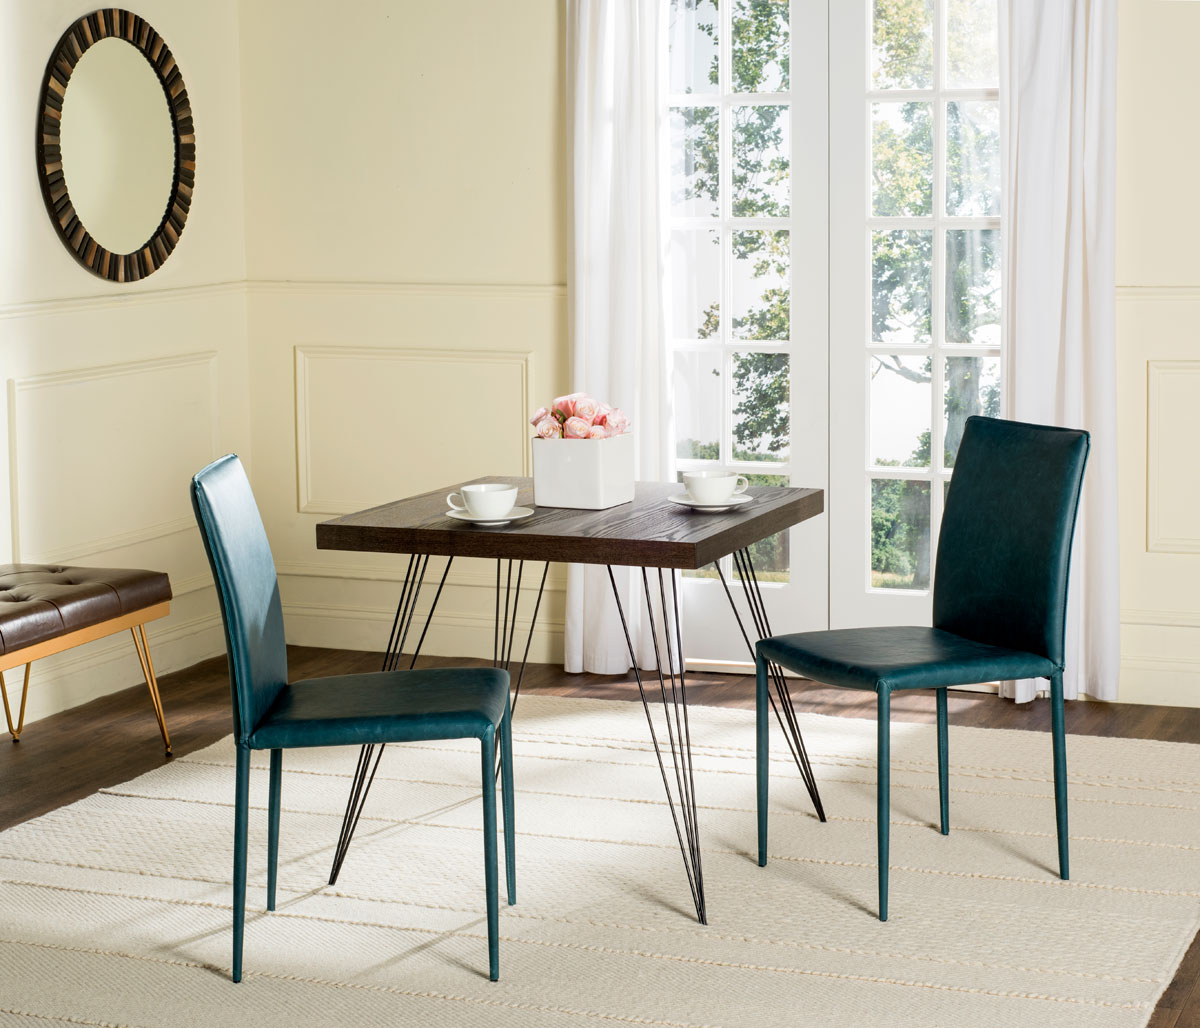 safavieh karna dining chair inada sogno dreamwave massage fox2009r set2 chairs furniture by